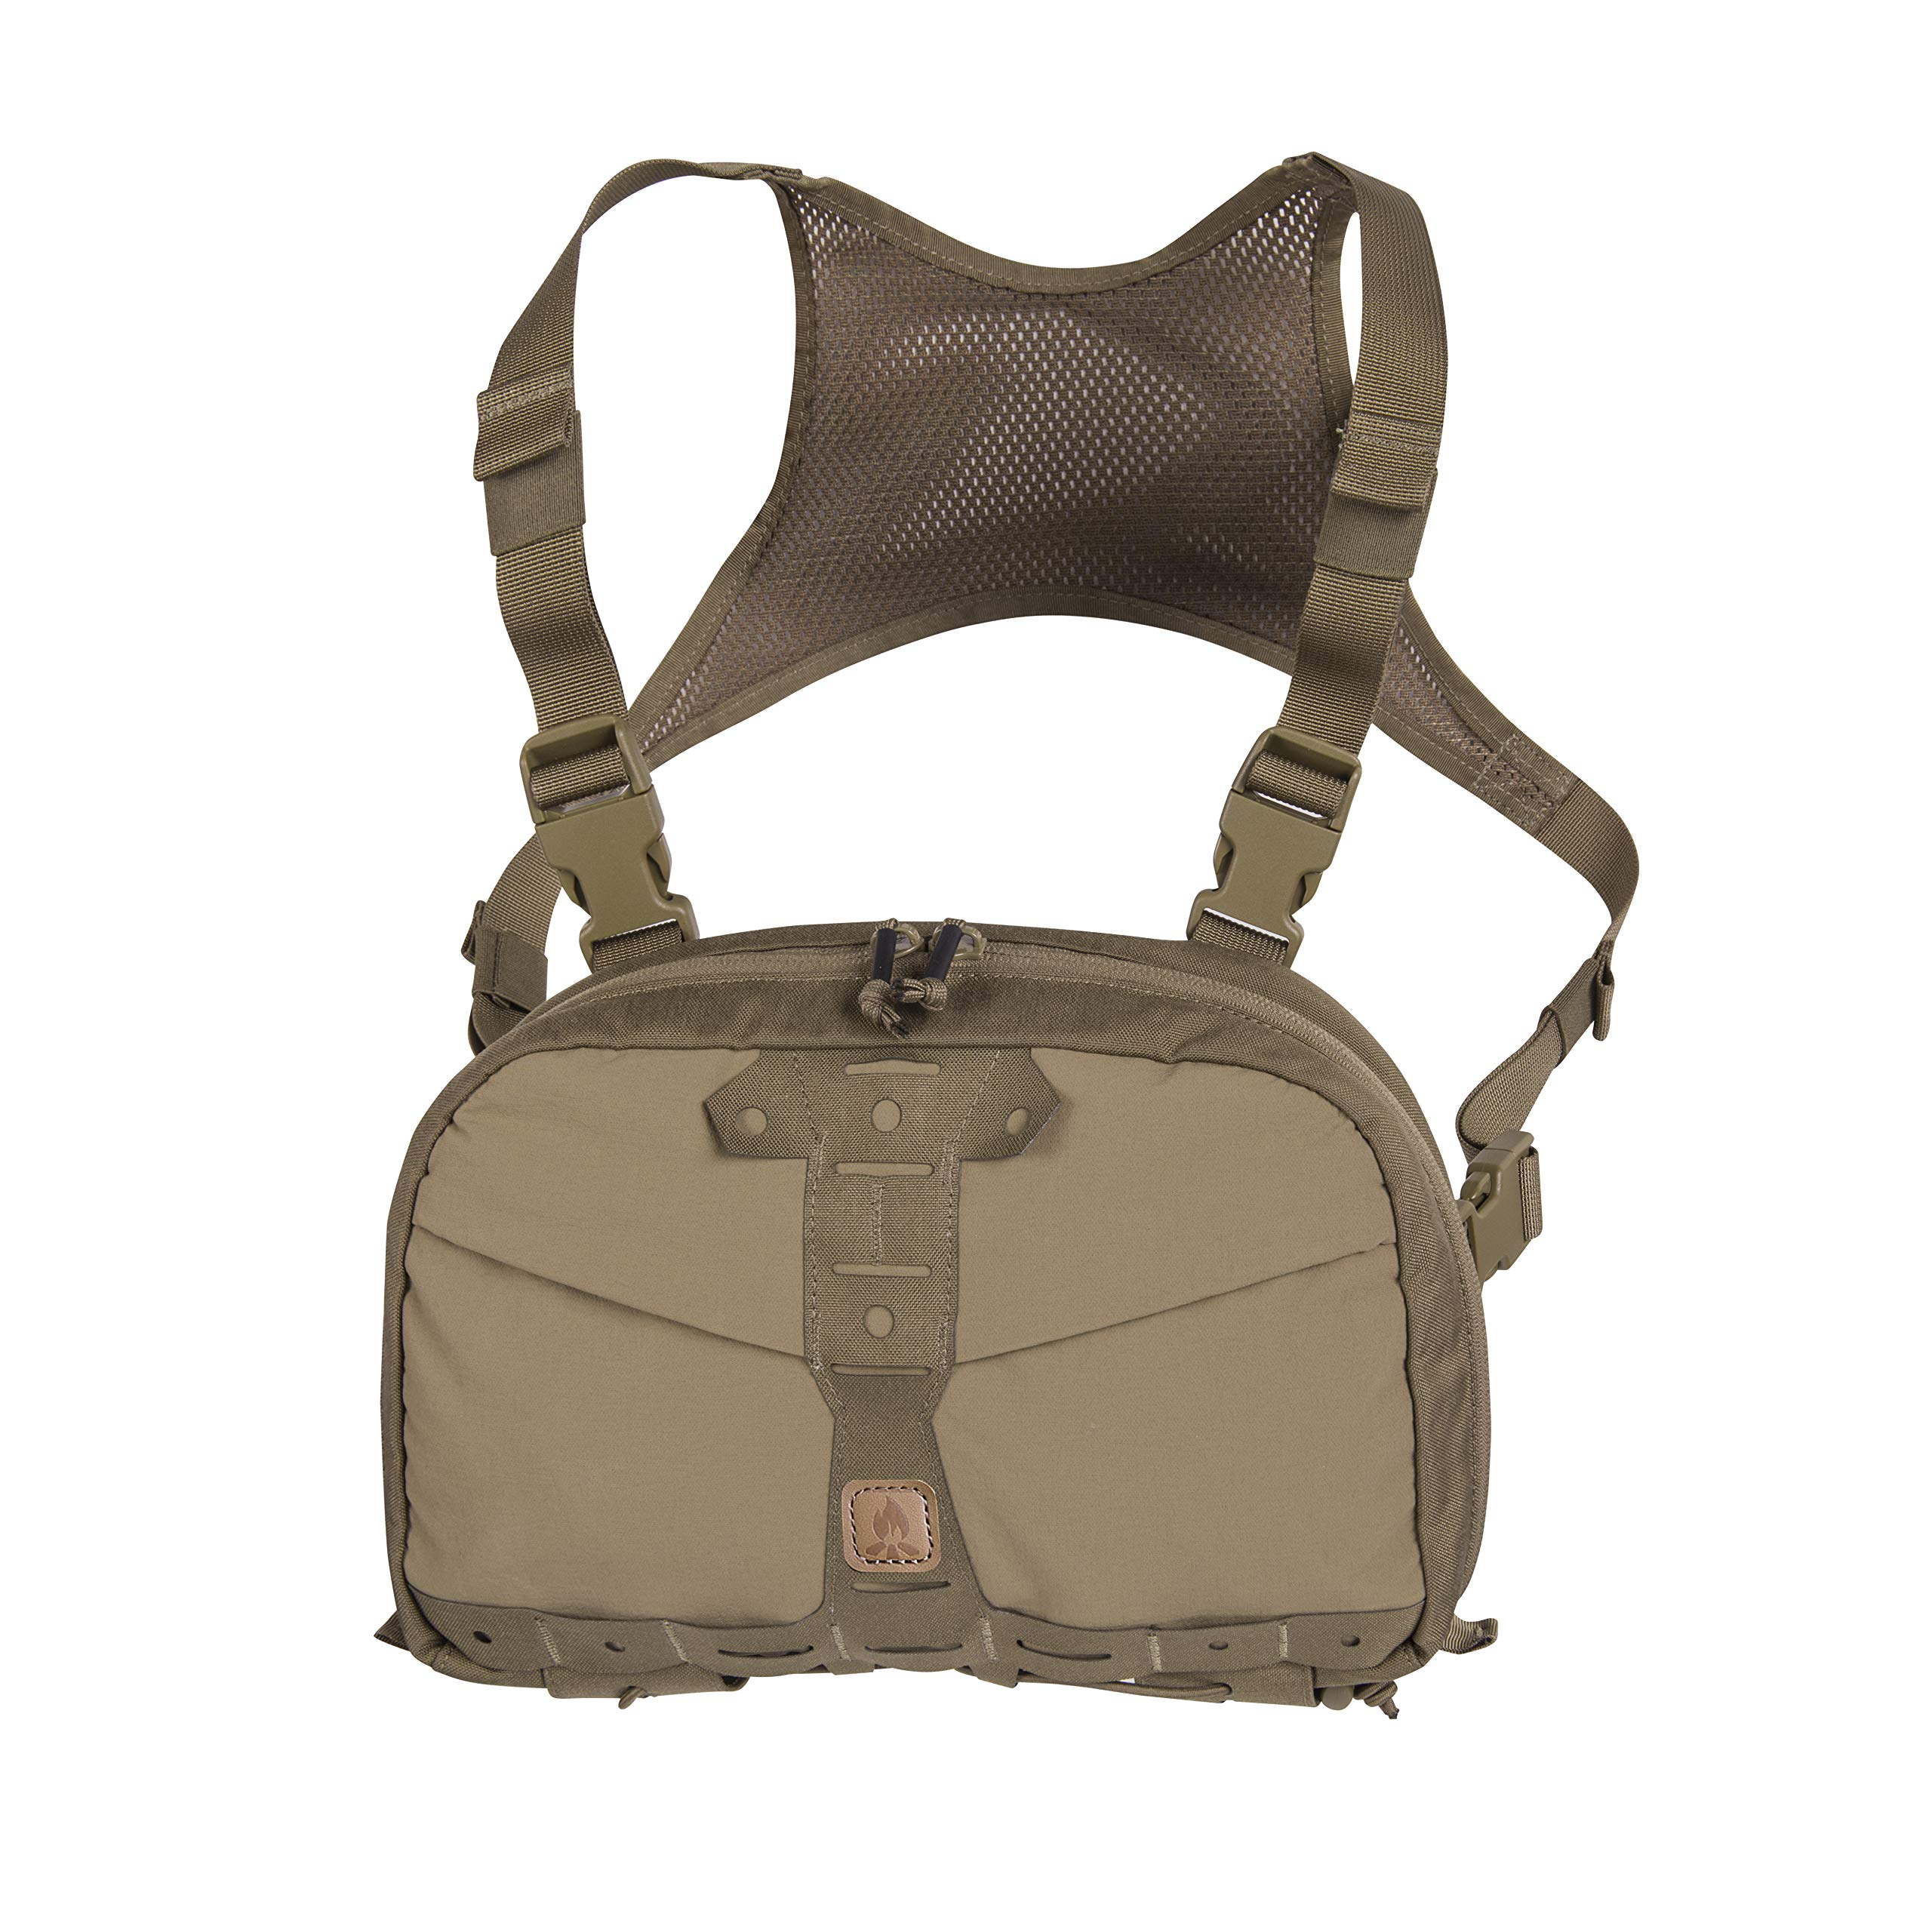 Helikon-Tex Bushcraft Line, Chest Pack Numbat Coyote Brown by Helikon-Tex